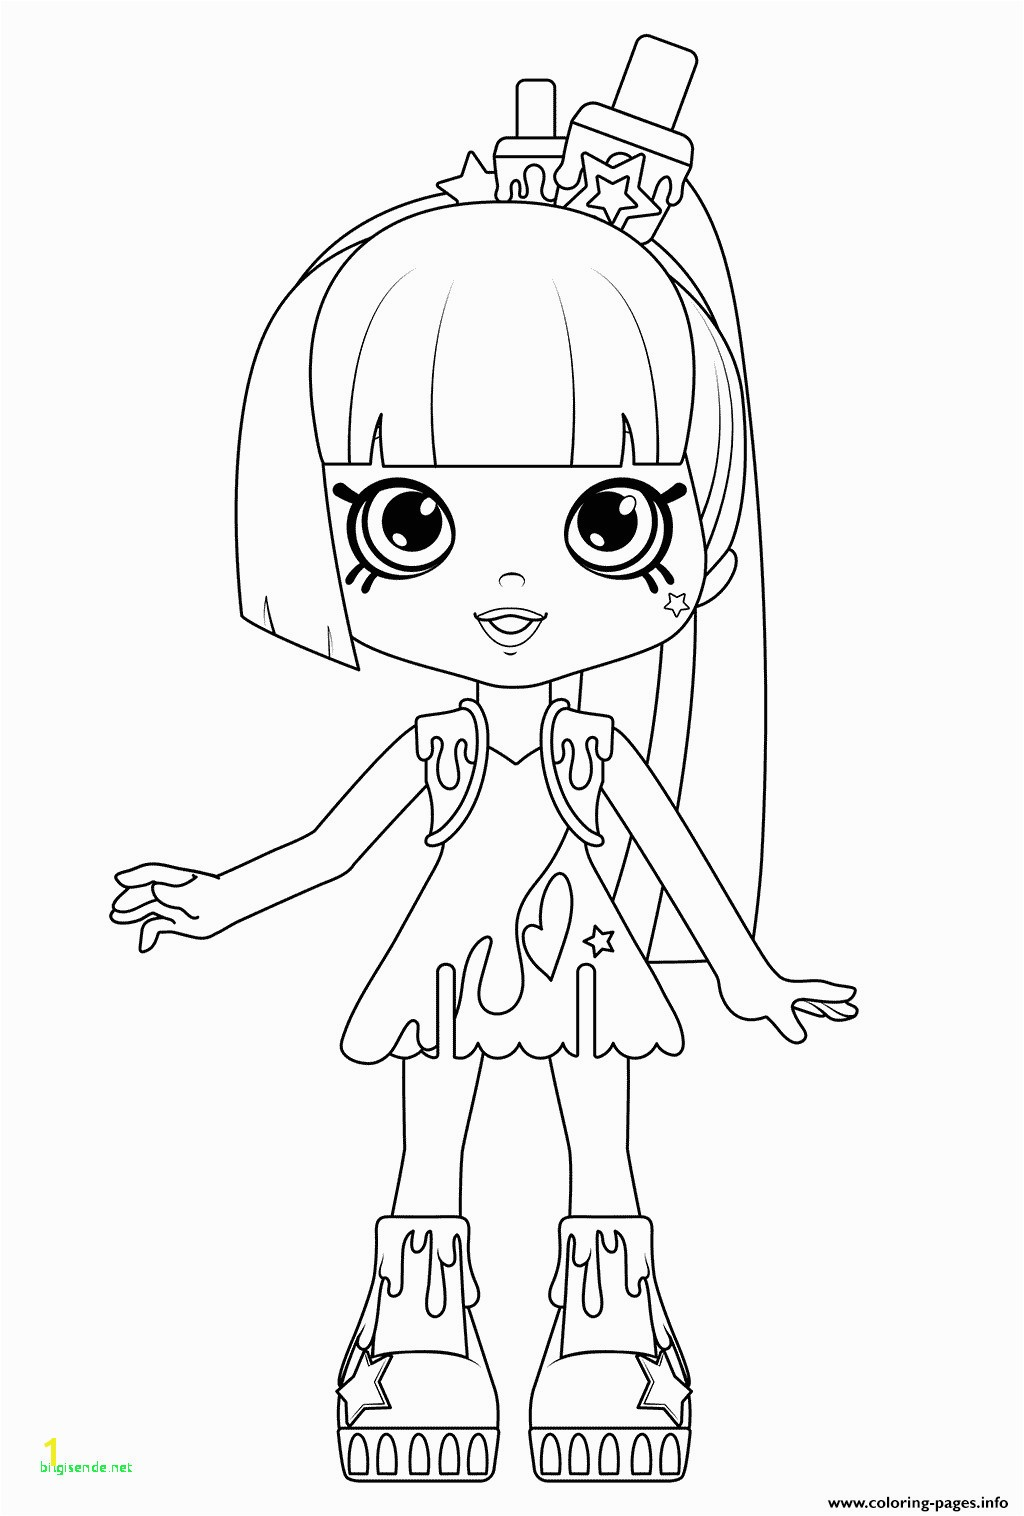 Coloring Pages for Girls Shopkins Printable Faces to Color Awesome Shopkins Happy Places Coloring Pages